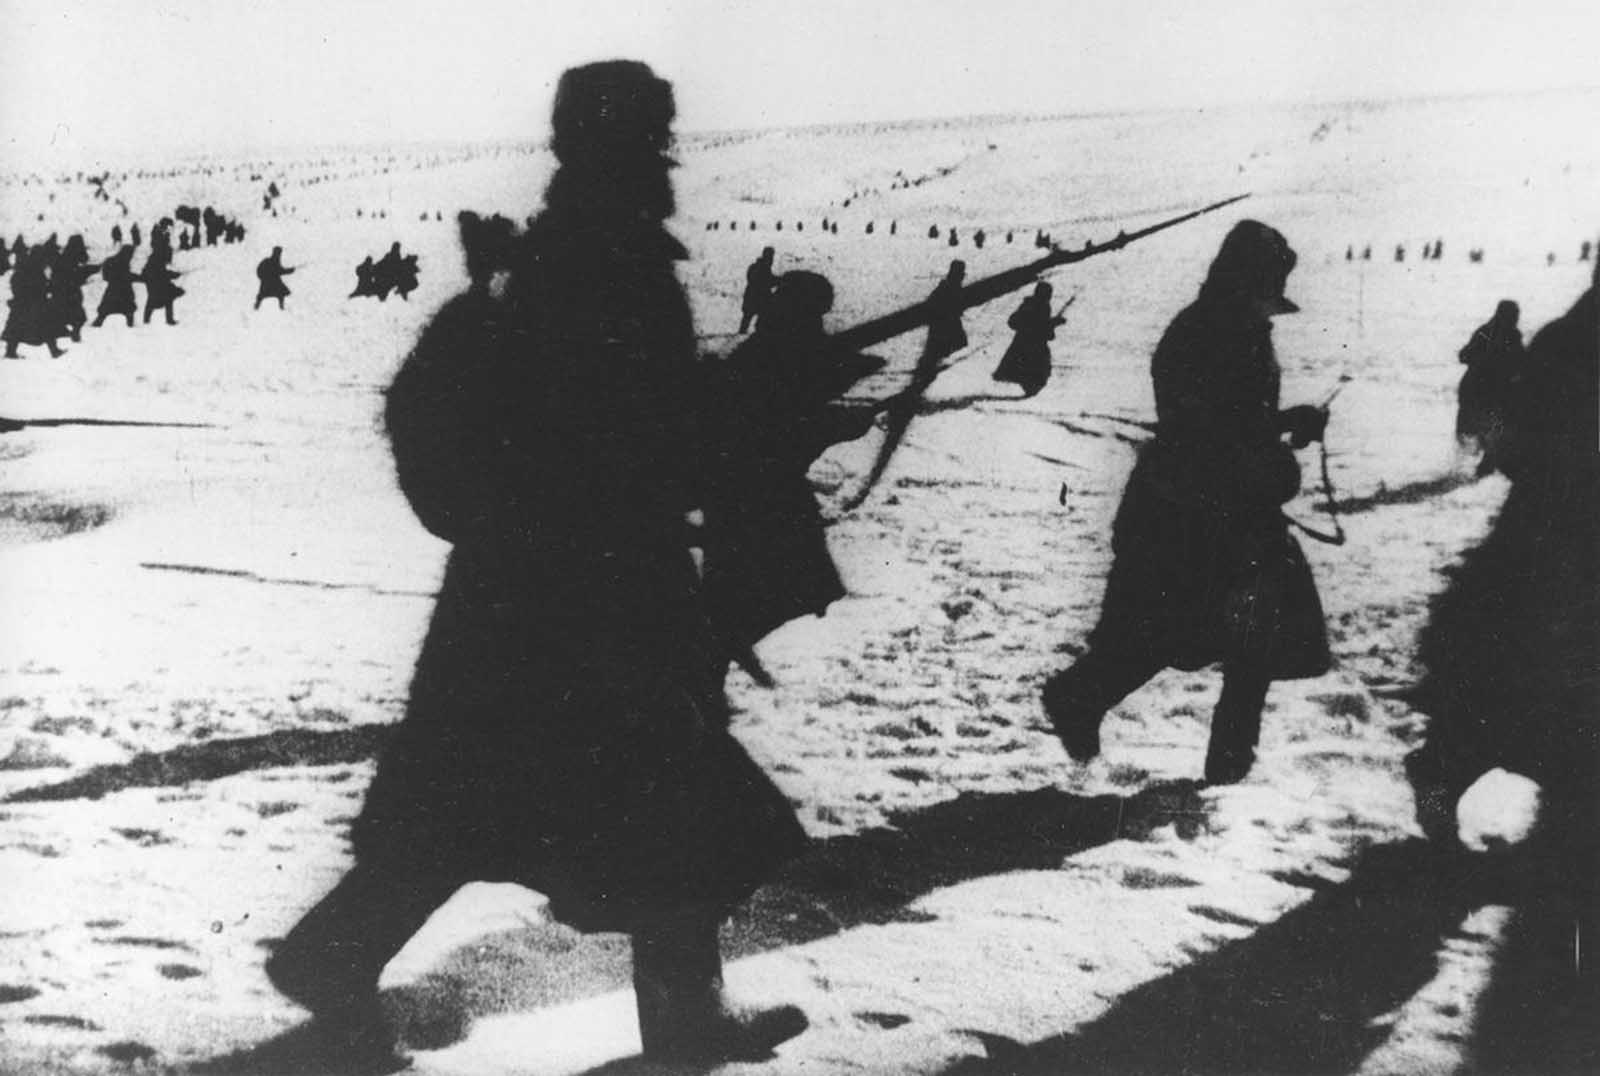 Soviet infantrymen move across snow-covered hills around Stalingrad, on their advance to lift the German siege of the city in early 1943. The Red Army eventually encircled the German Sixth Army, trapping nearly 300,000 German and Romanian soldiers in a narrow pocket.